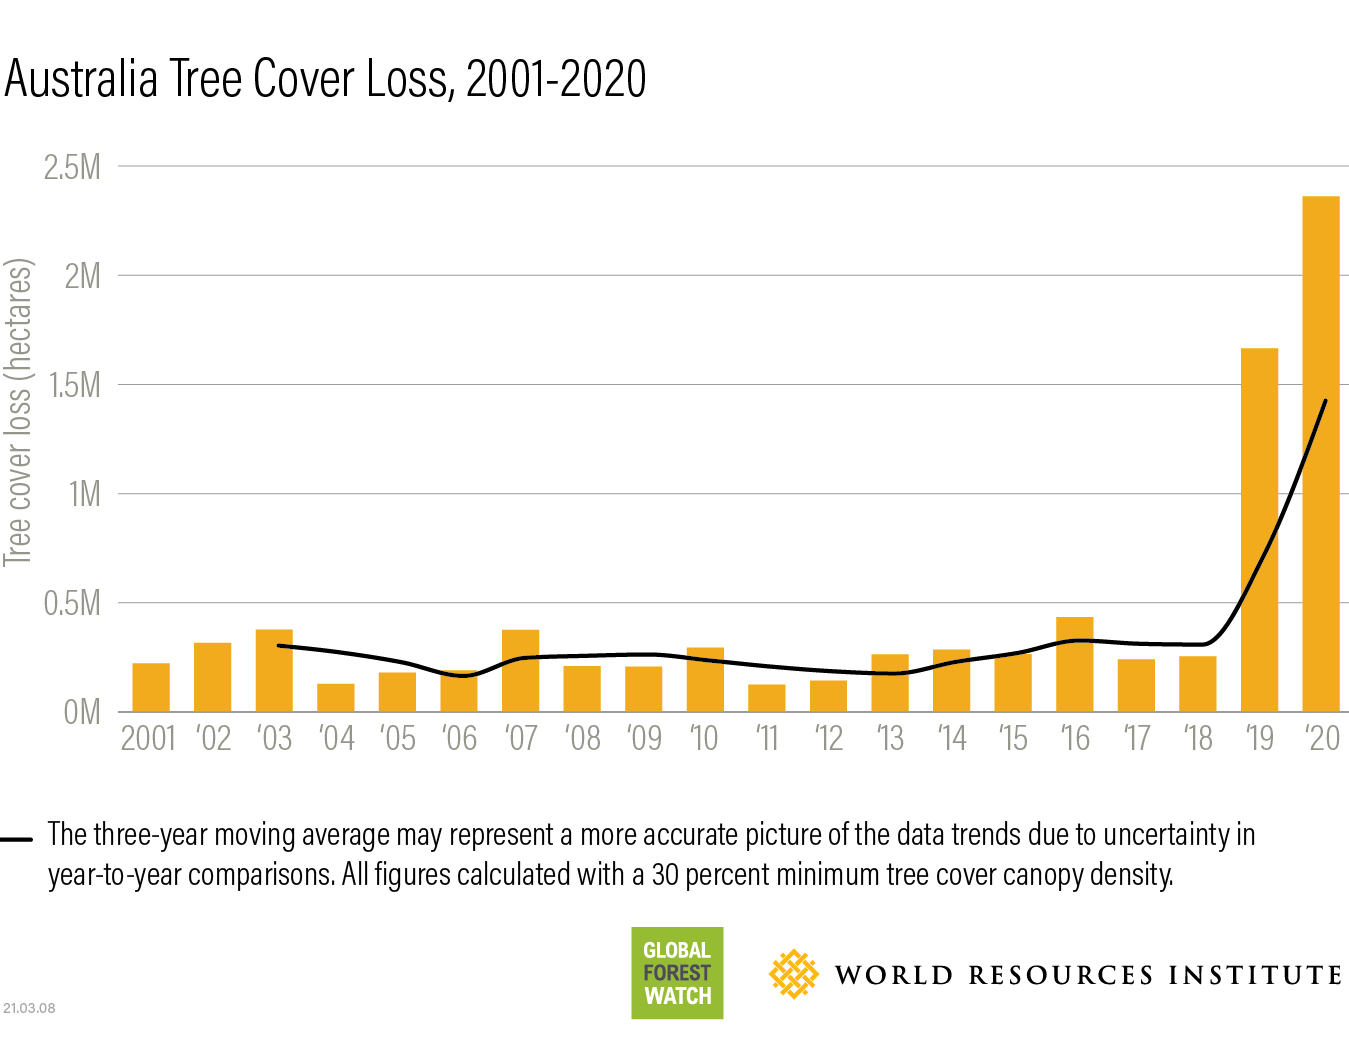 Australia 2020 tree cover loss data